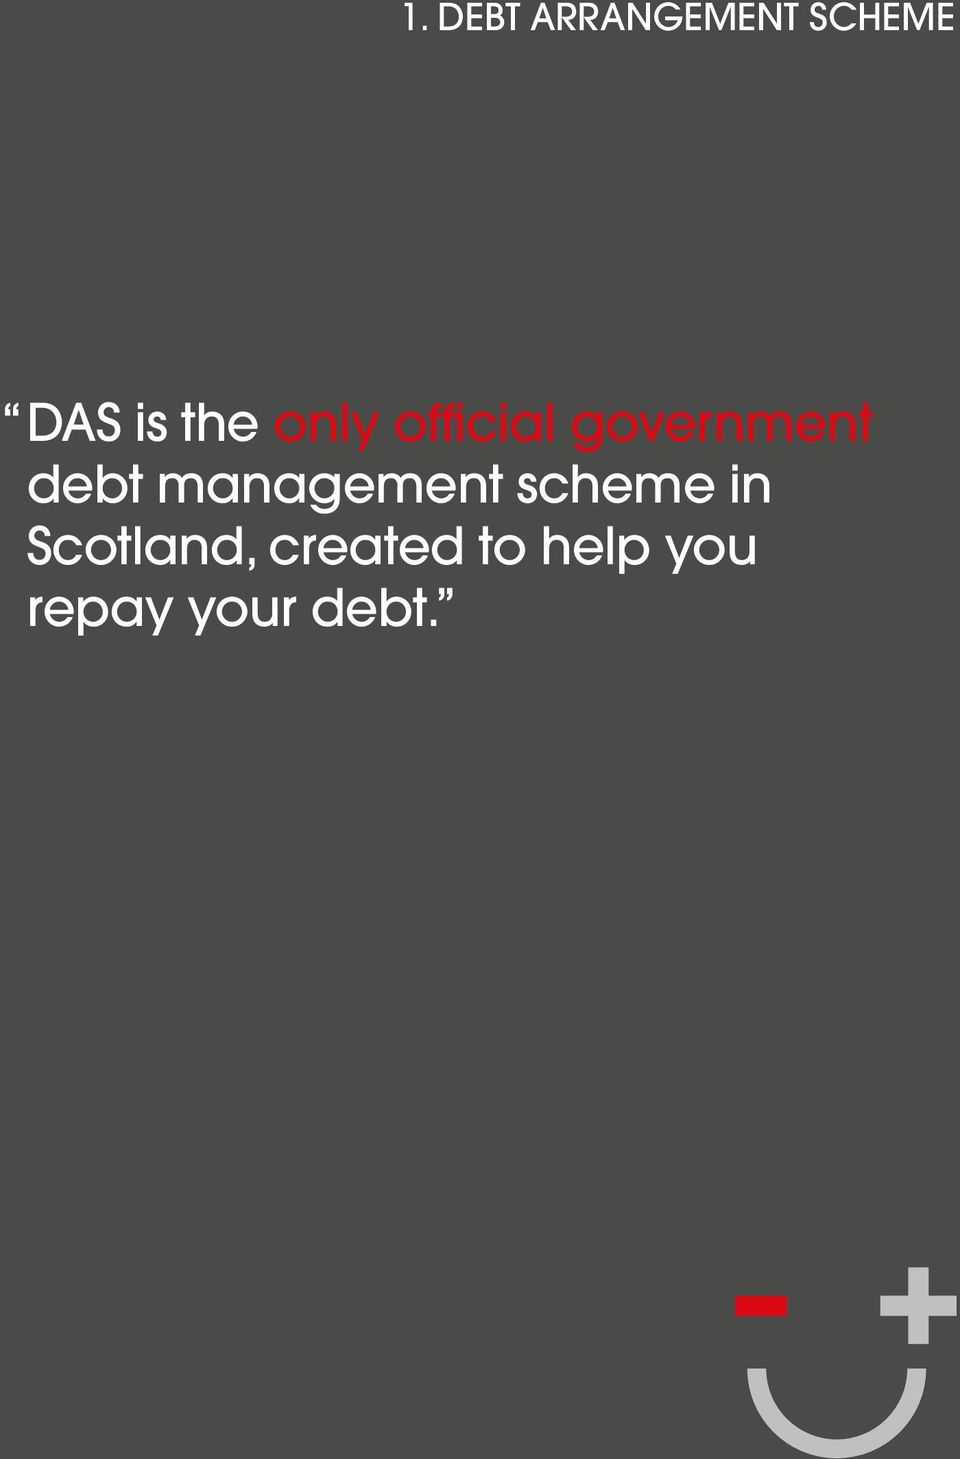 management scheme in Scotland,